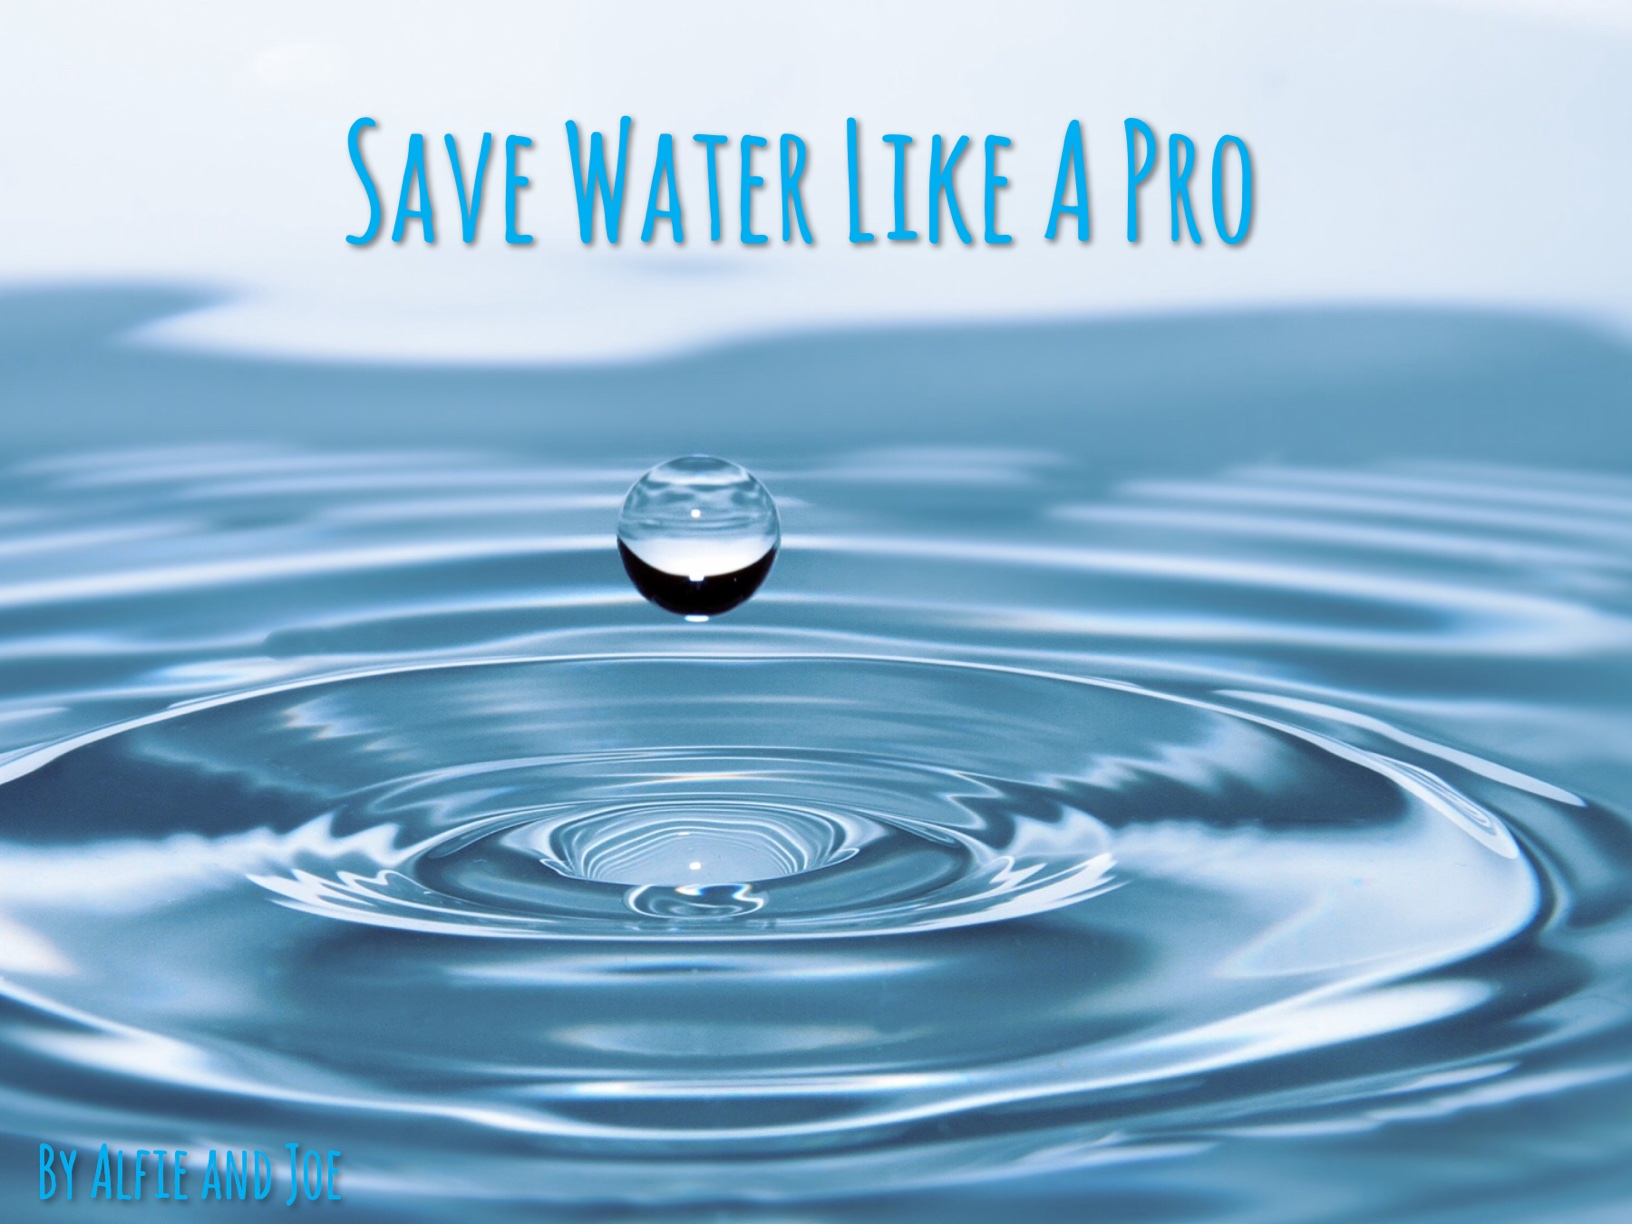 Save water like a pro